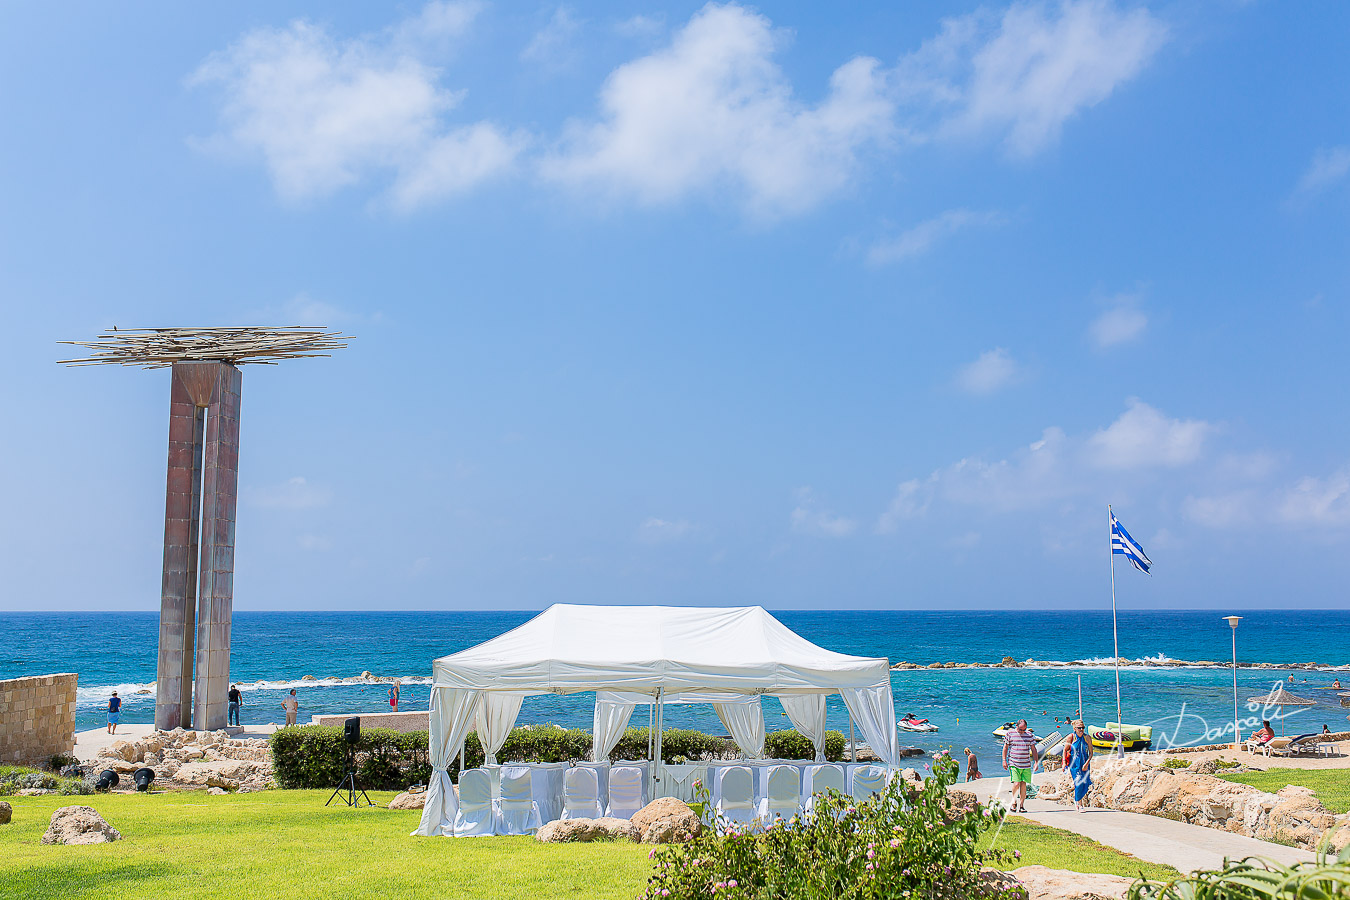 Beach Ceremony arrangements for a Jewish Wedding Ceremony in Cyprus.